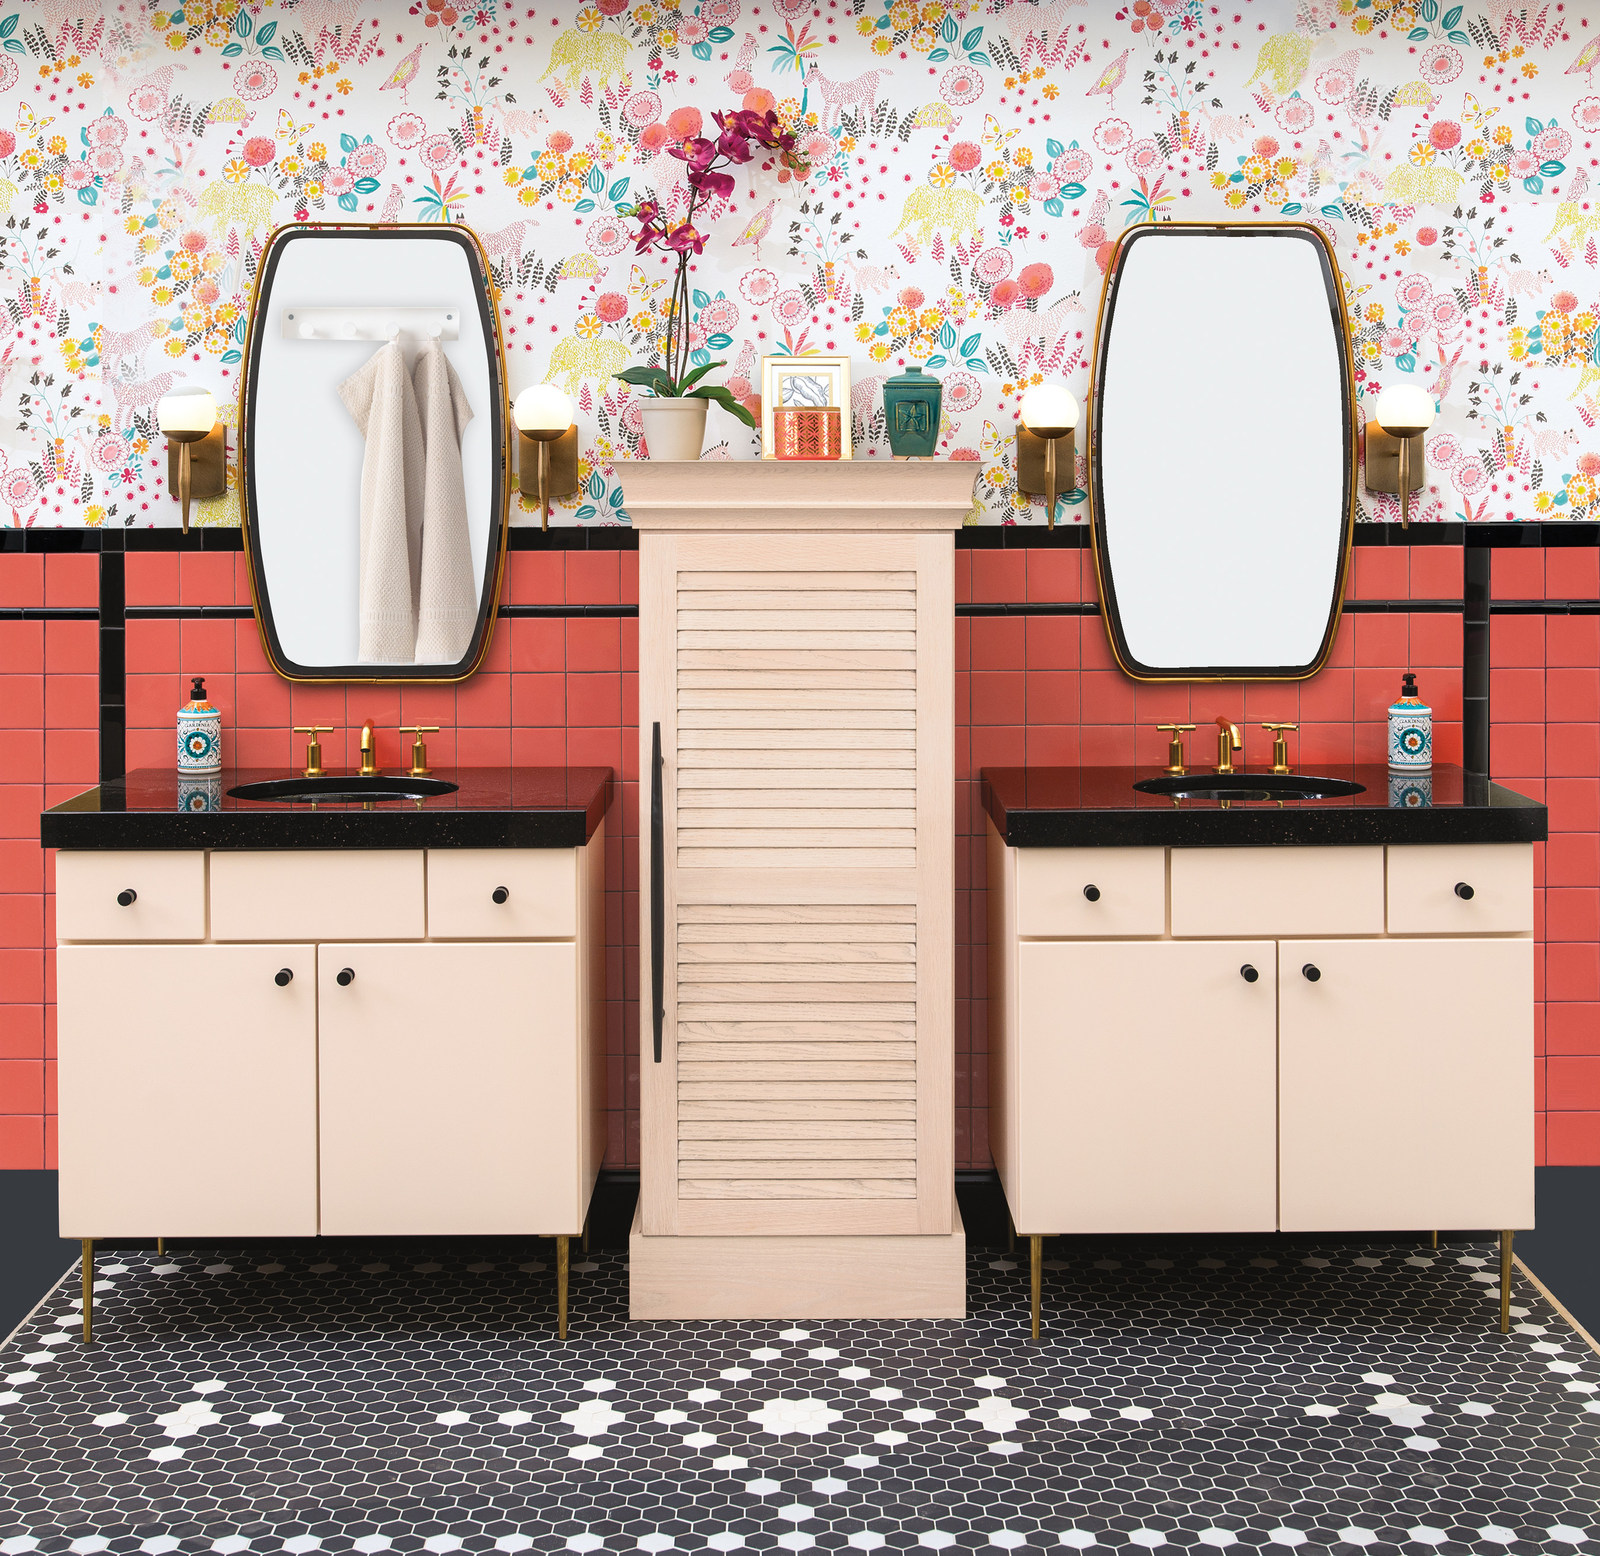 Although The Antithesis Of All Things Commonly Wellborn Cabinet, Inc., This  Unique Bathroom Sits Front And Center In This Yearu0027s Industry Show Booth.